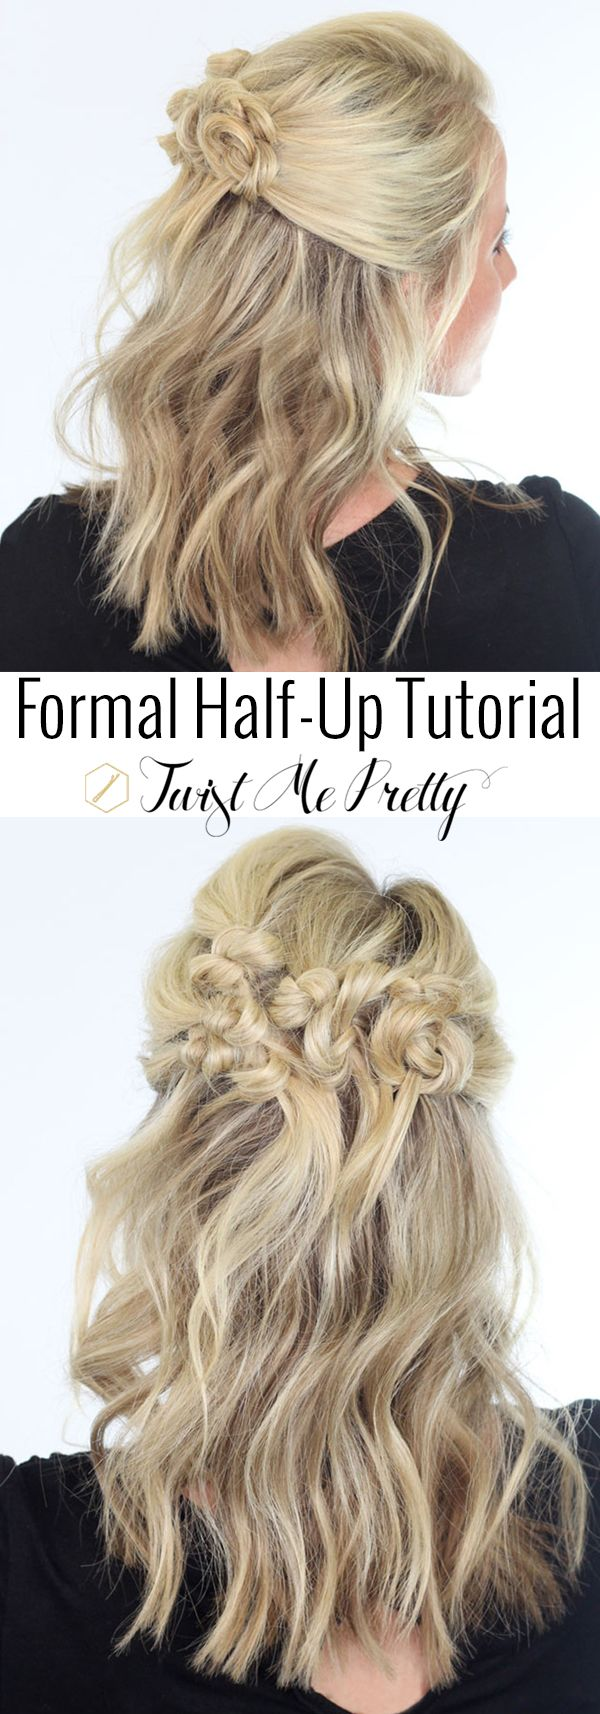 A gorgeous halfup style that works perfectly on medium length hair